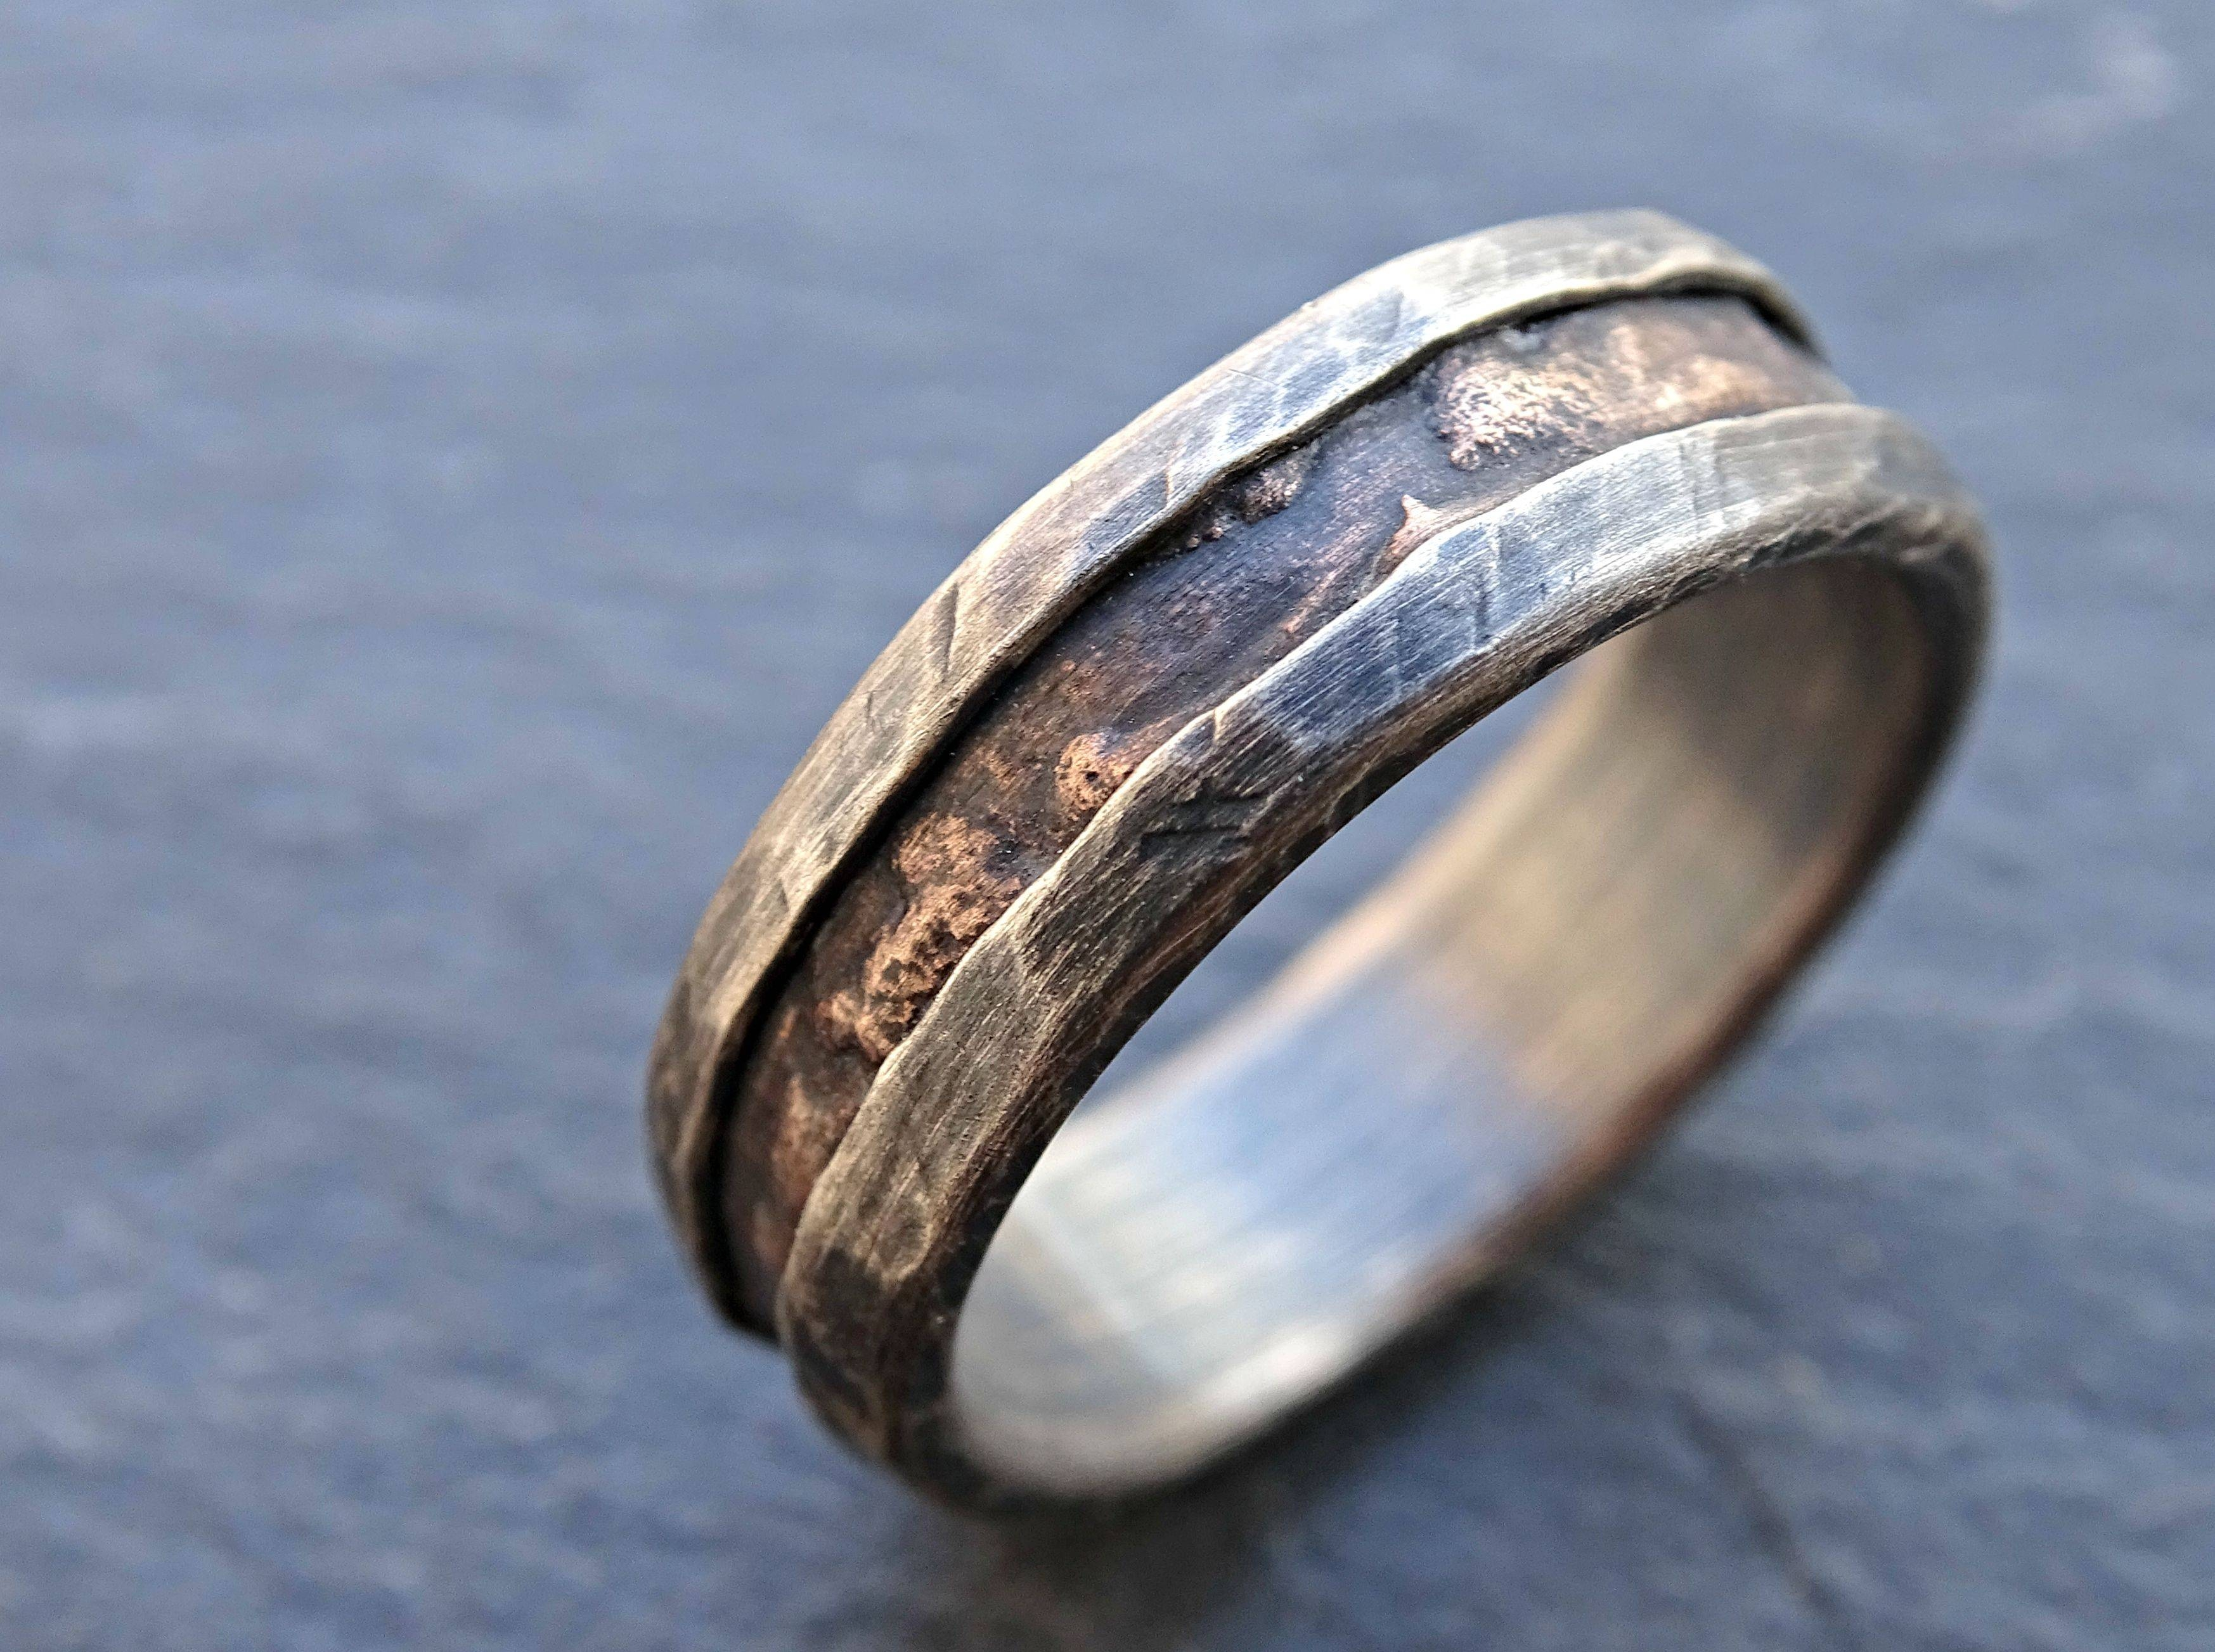 Buy A Hand Made Cool Mens Ring, Alternative Wedding Band Rugged Regarding Wood Grain Wedding Bands (View 3 of 15)